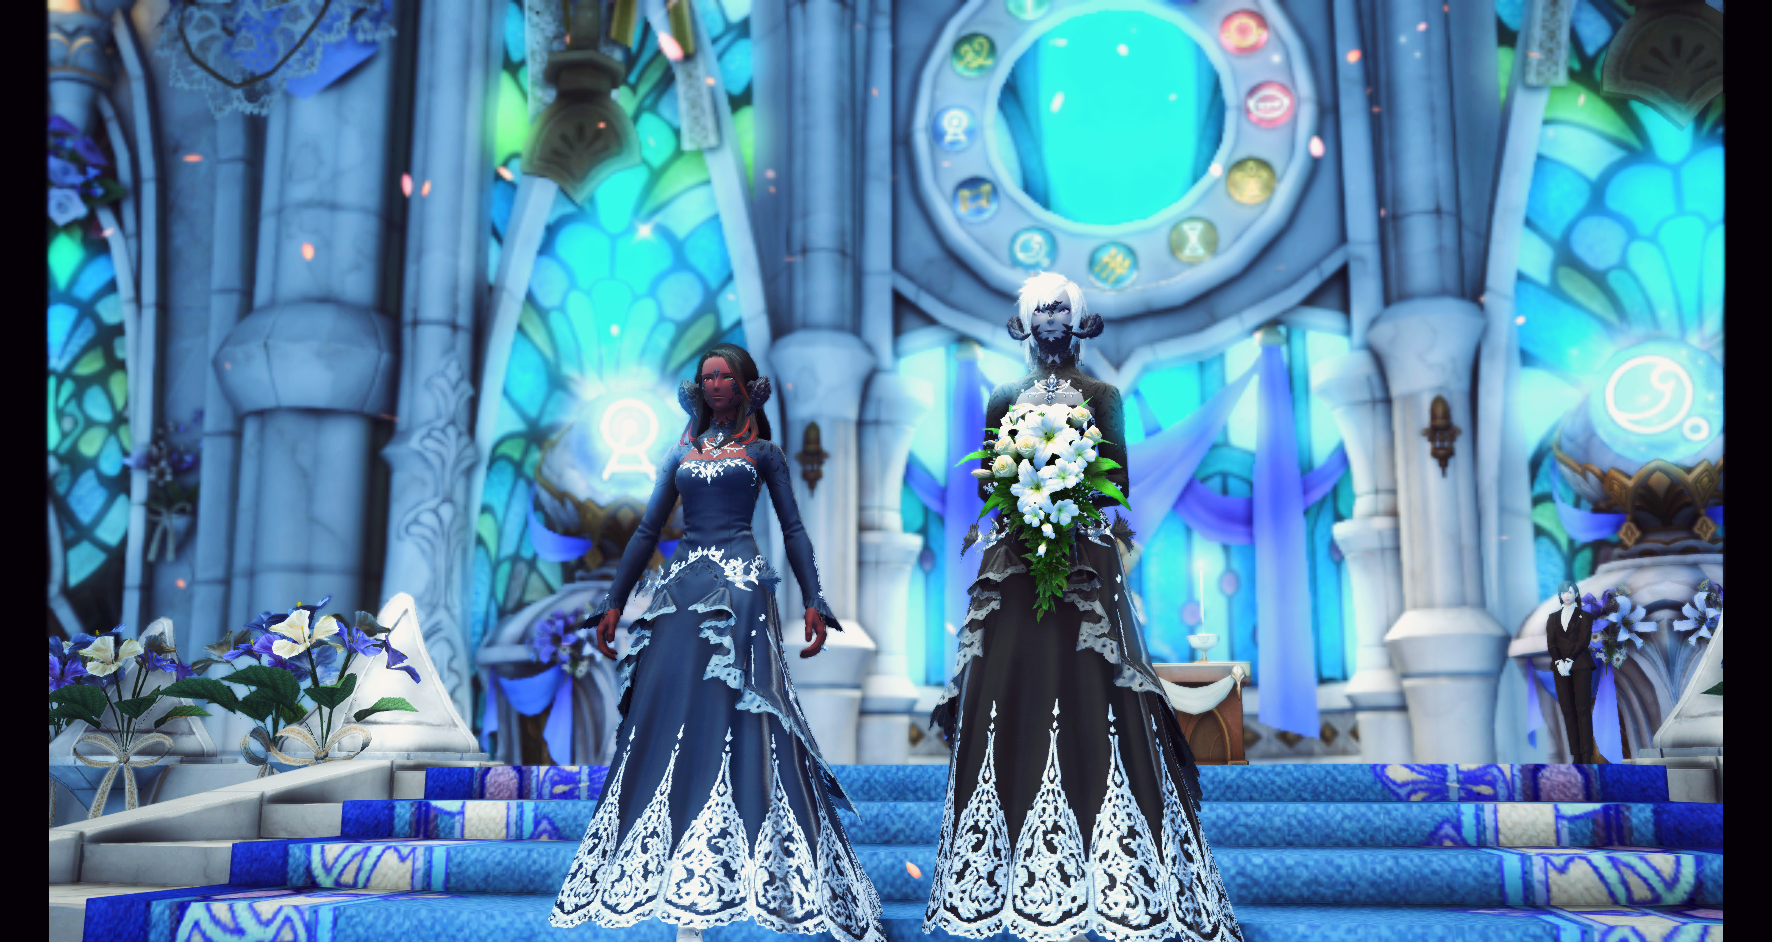 ffxiv_dx11_2019-05-04_14-55-36.png